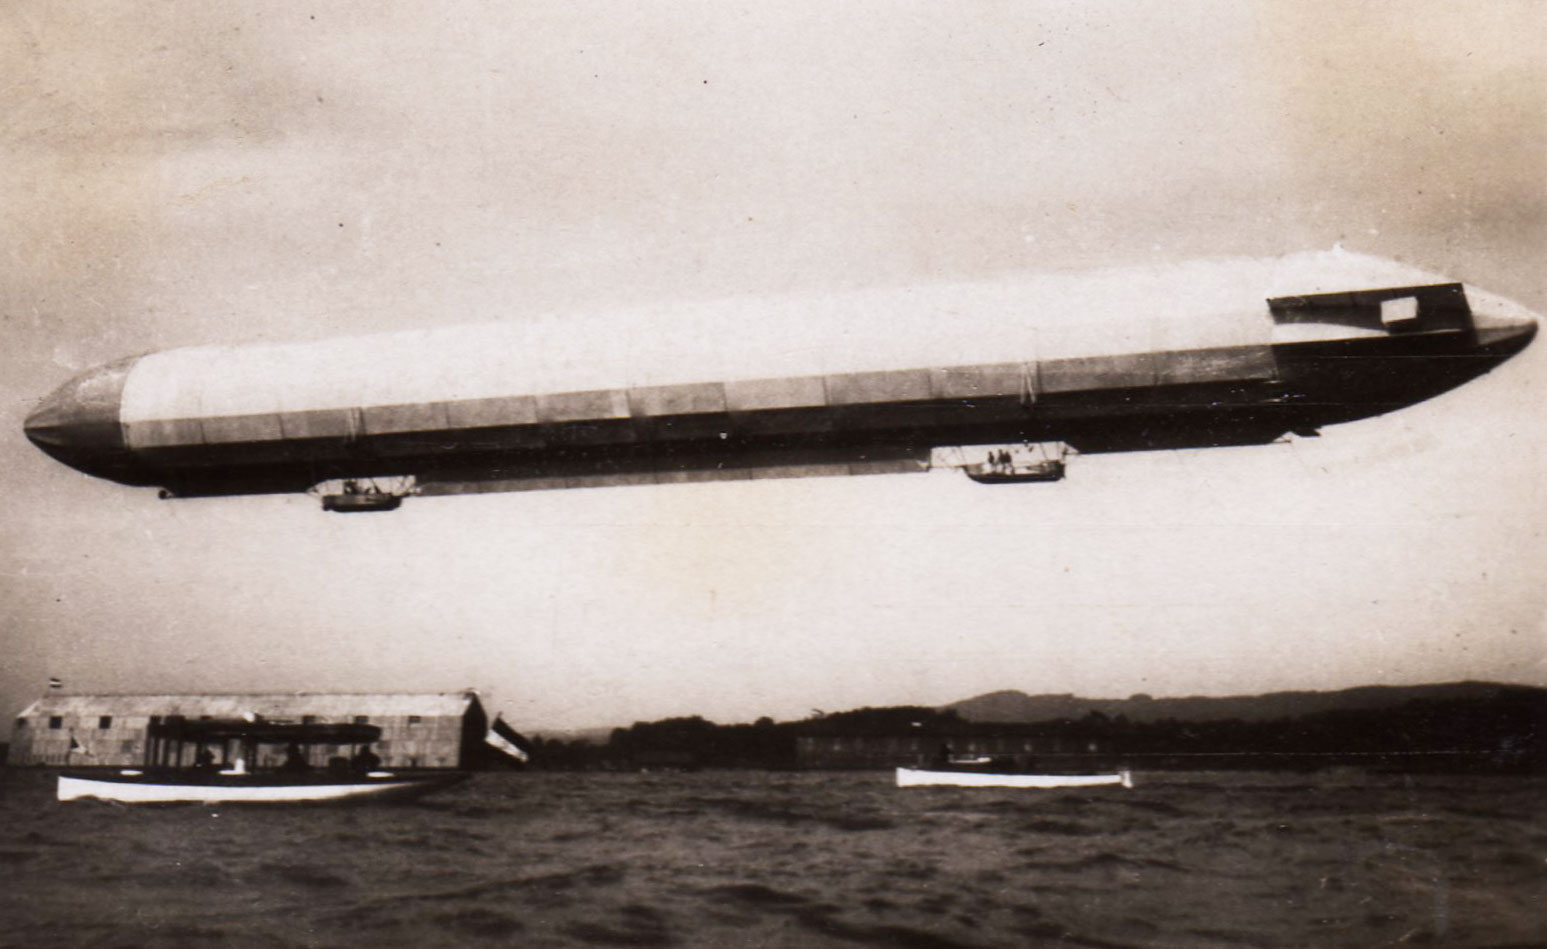 The Zeppelin LZ 3 in flight following lengthening.